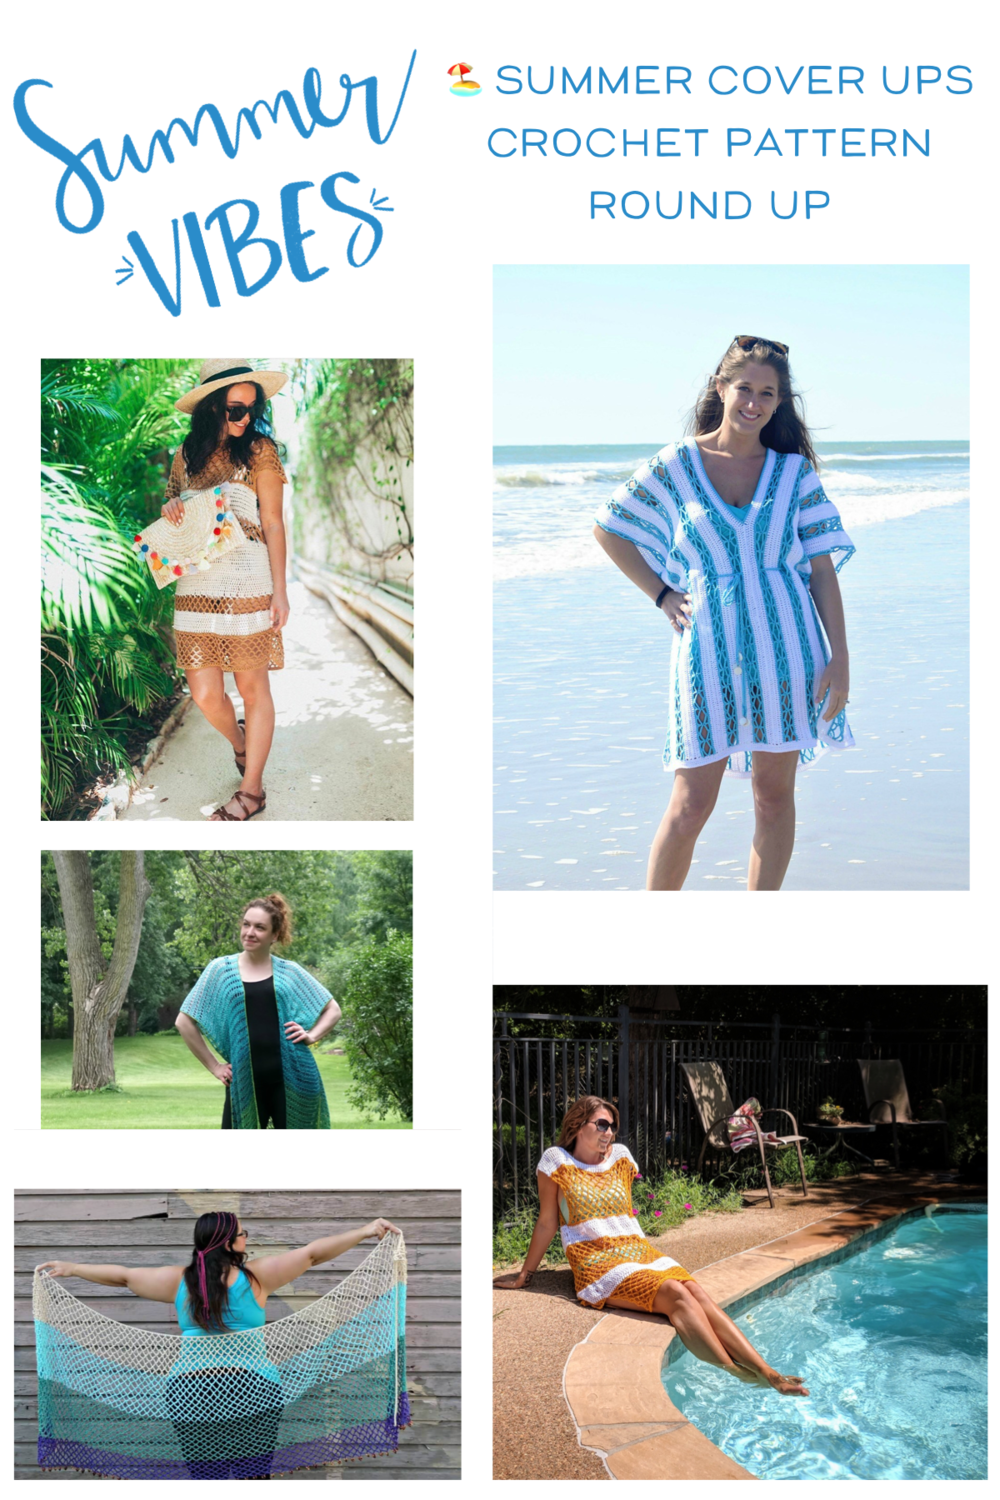 Beach Cover Up Free Crochet Pattern Round Up.